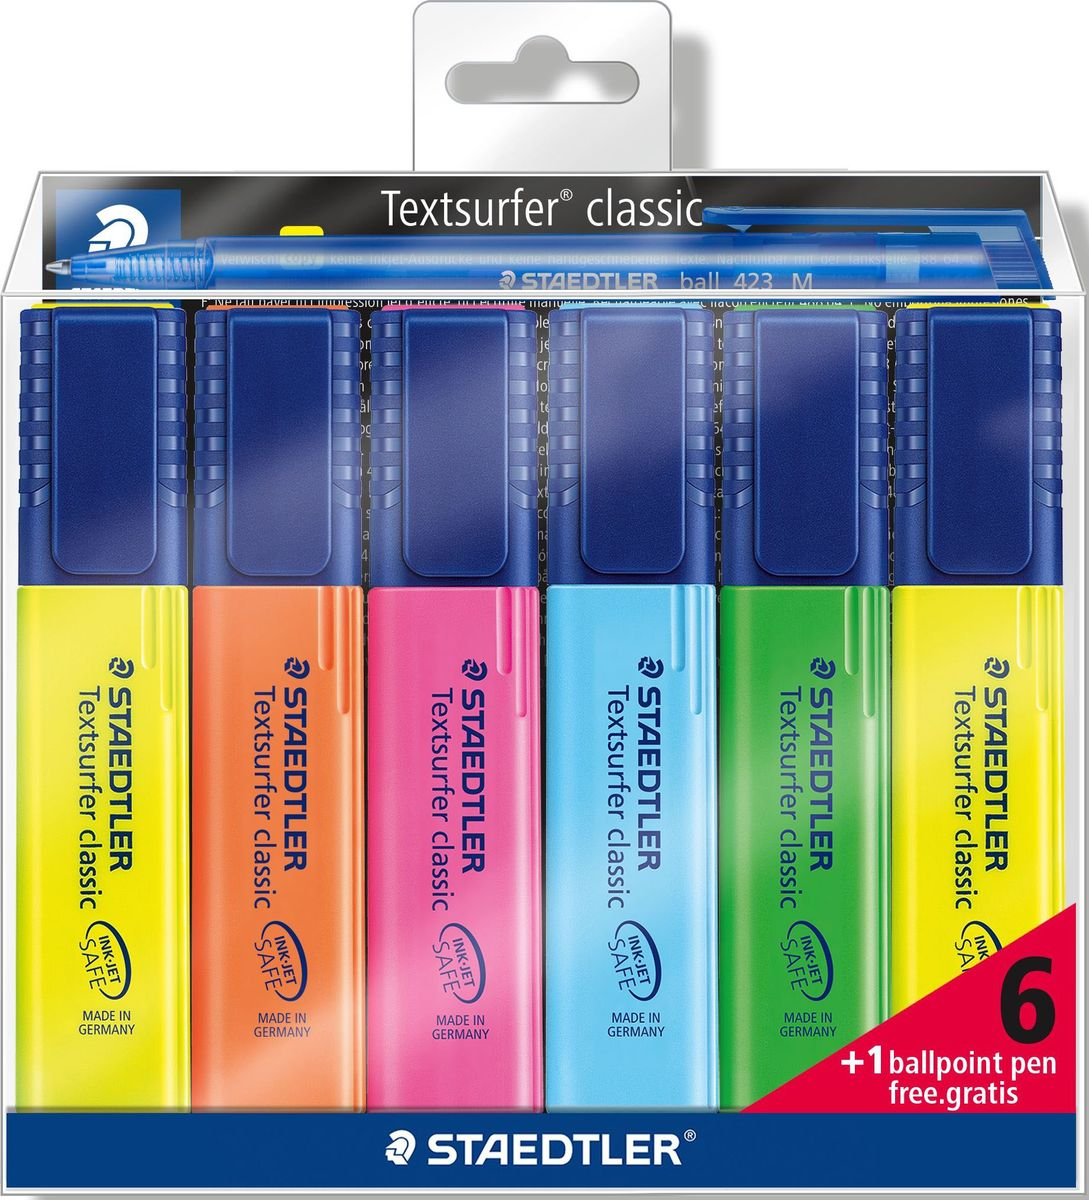 Staedtler Набор текстовыделителей Textsurfer Classic 364 6 цветов с ручкой textsurfer classic highlighter no 364 fast drying for paper fax and carbon copies ultra soft chisel tip